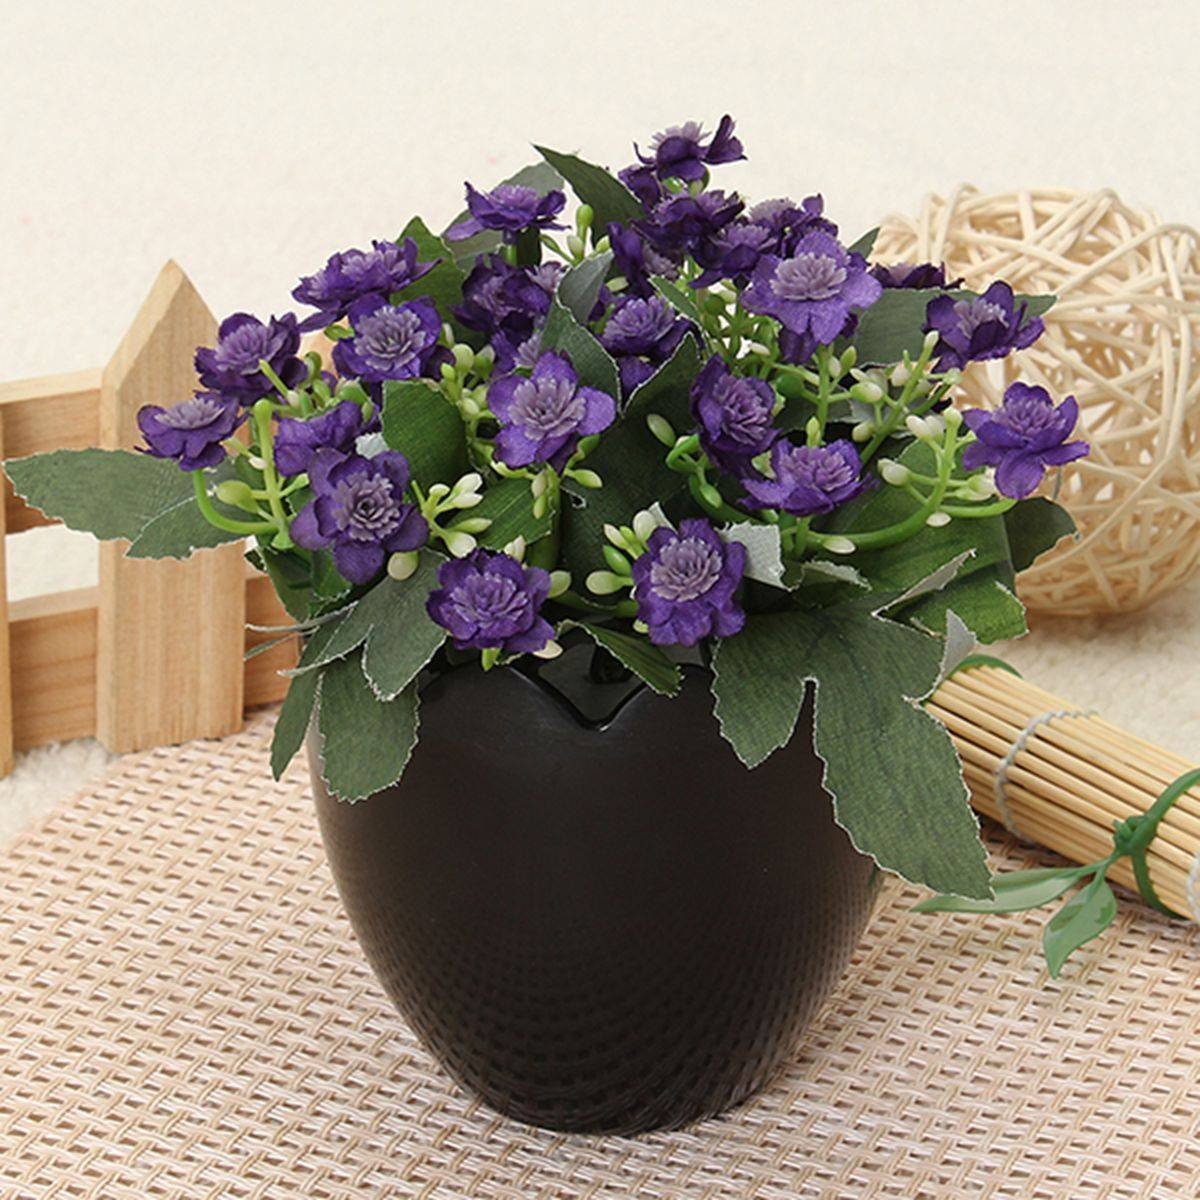 Egg Mold Shaped Flower Plant Pot Container Planter Holder Home Office Garden Decor Black In Pots Planters From On Aliexpress